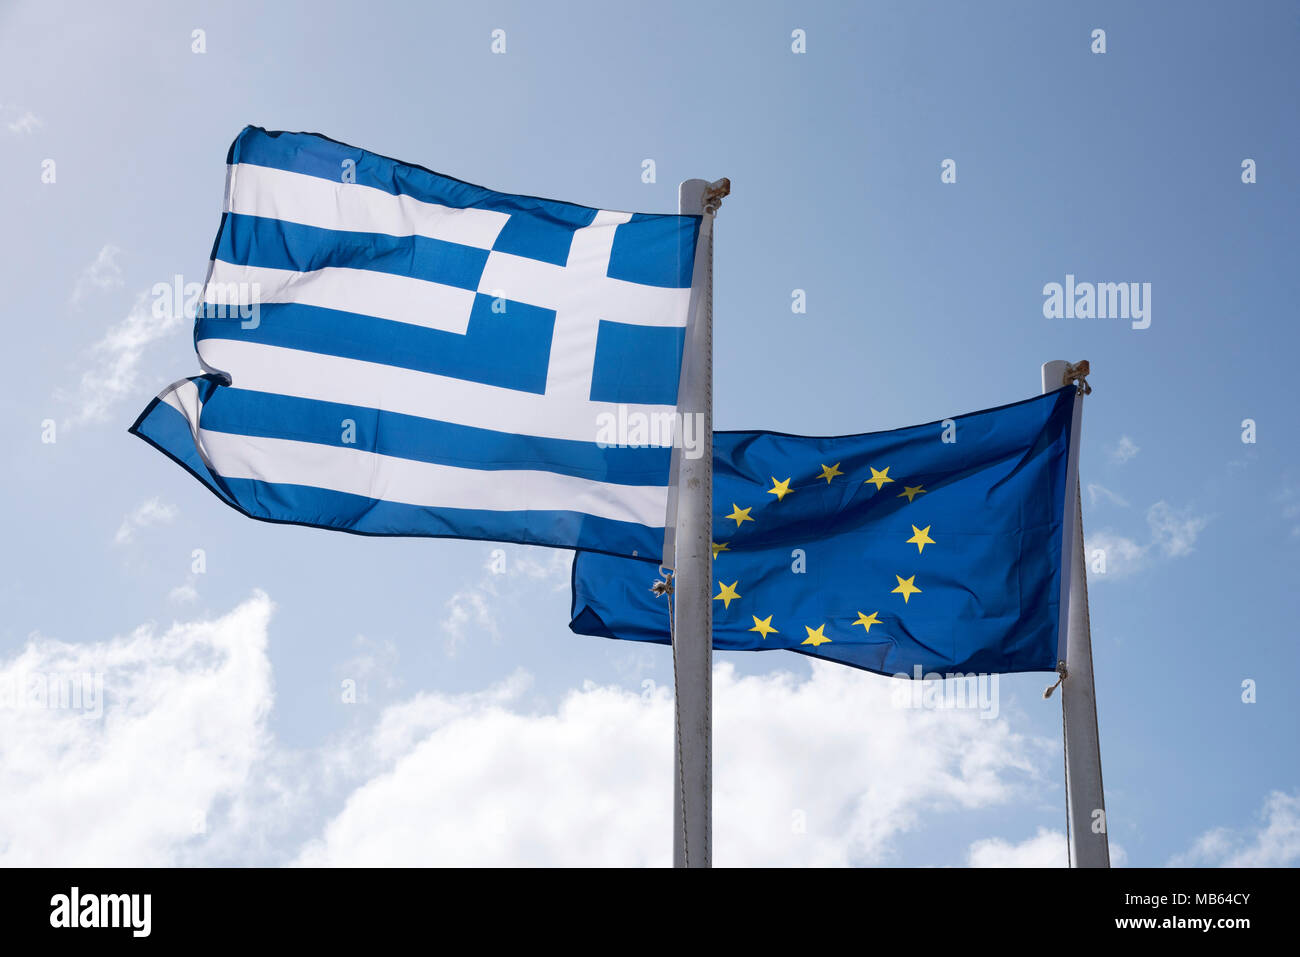 The Greek flag and the European Union flags flying together Stock Photo